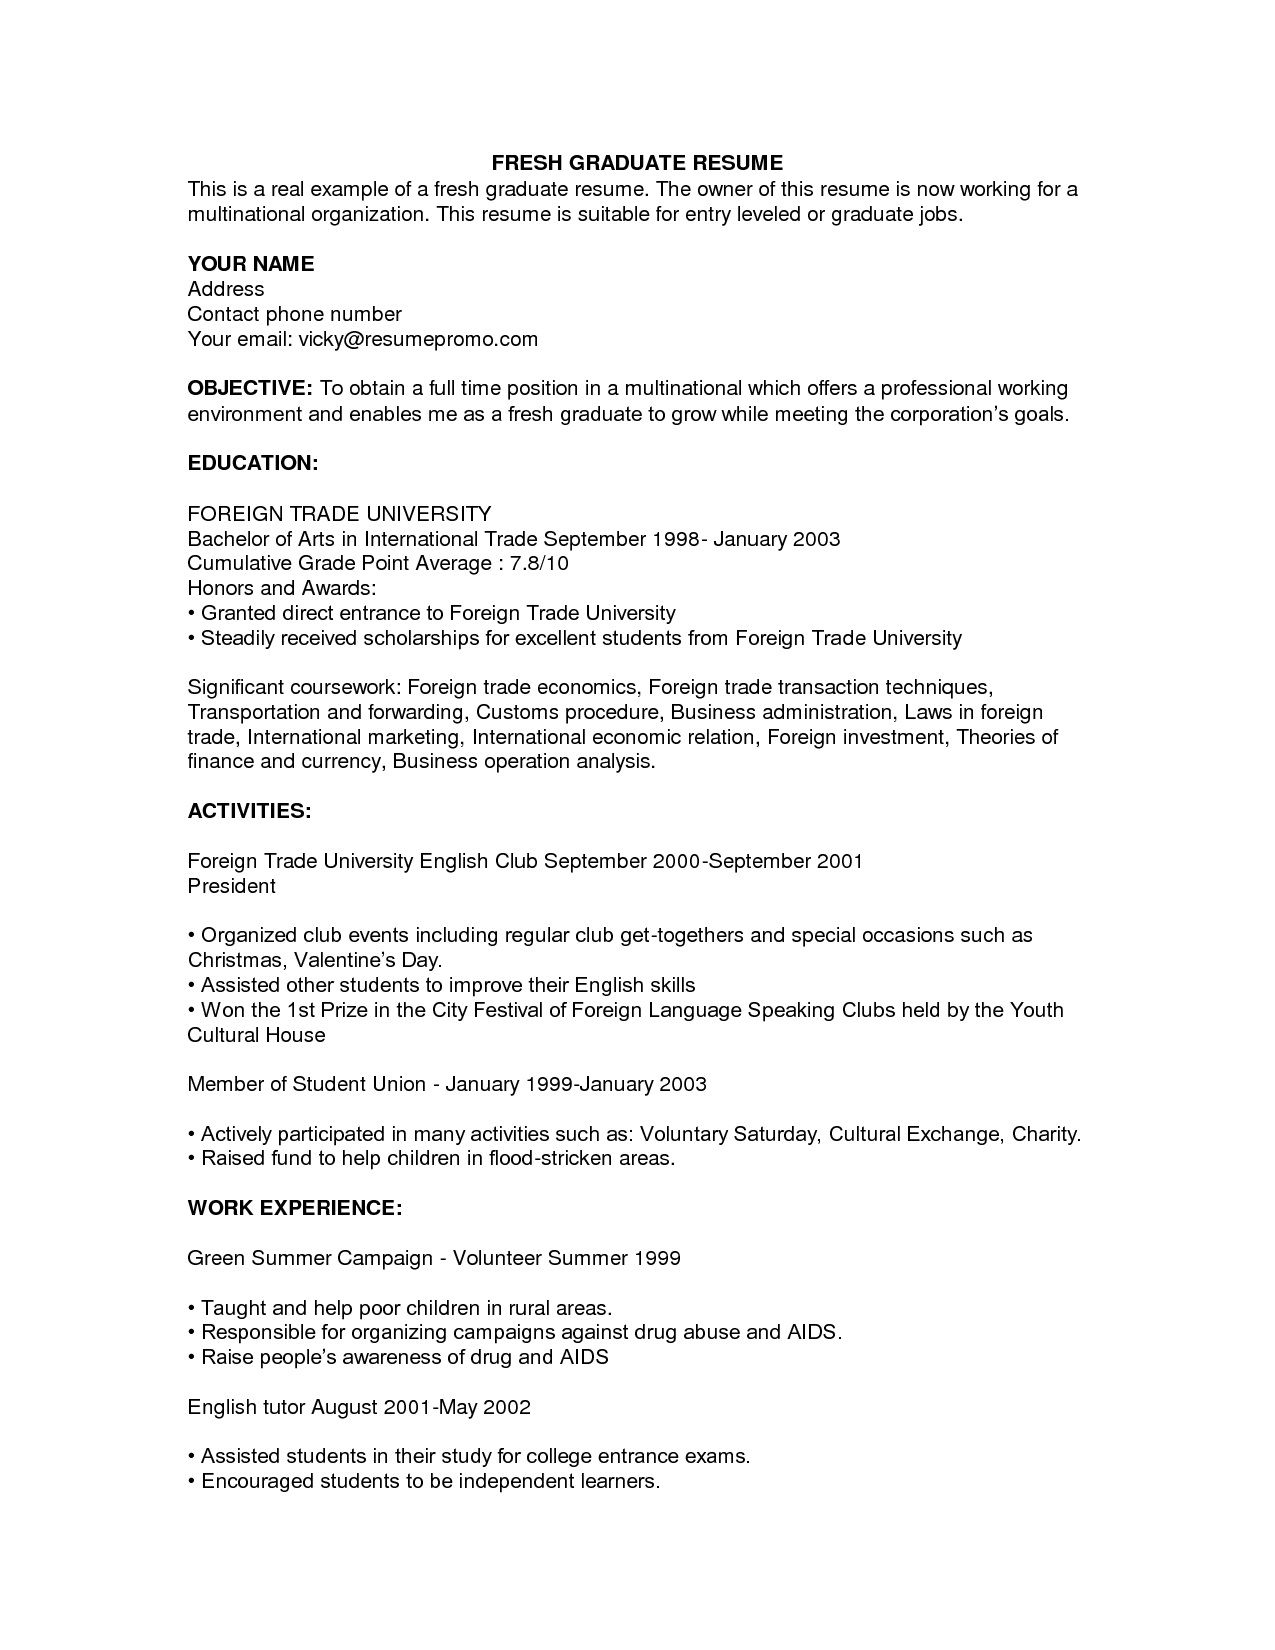 Example Of Resume For Fresh Graduate http